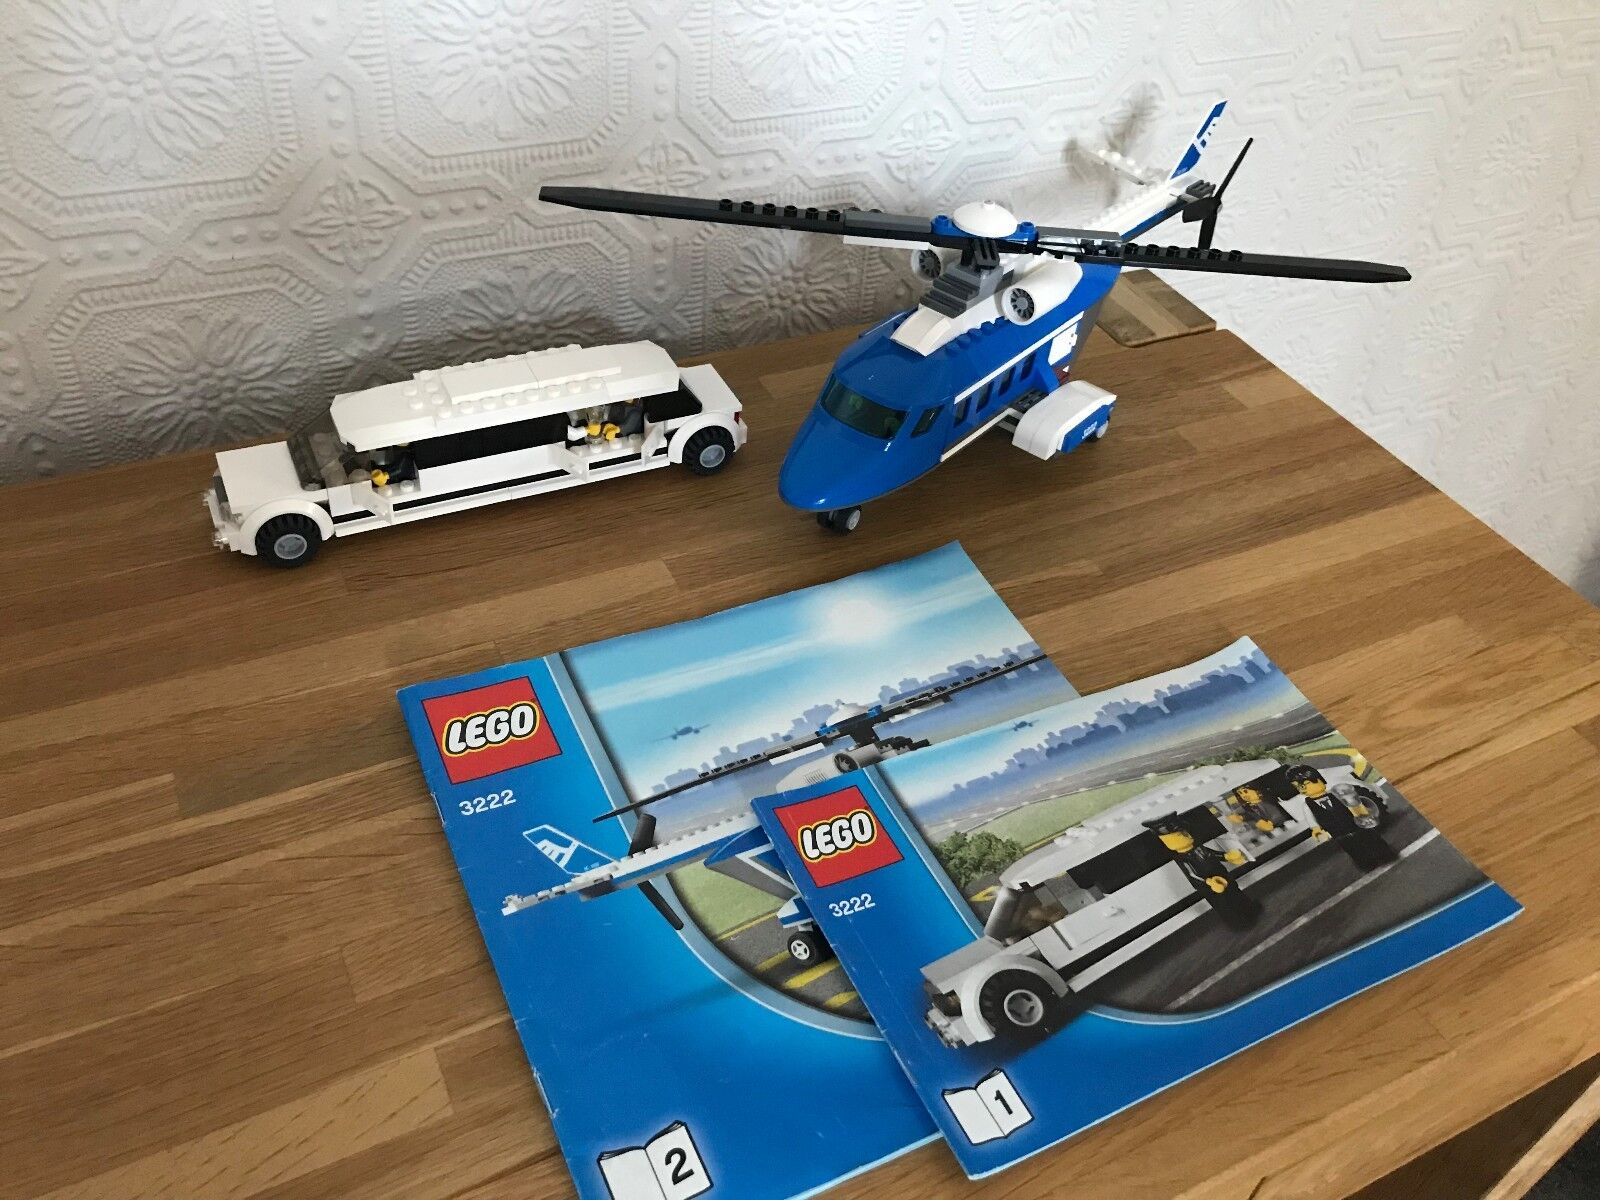 Lego City Helicopter & Limousine (3222) 100% Complete, Instructions, No box